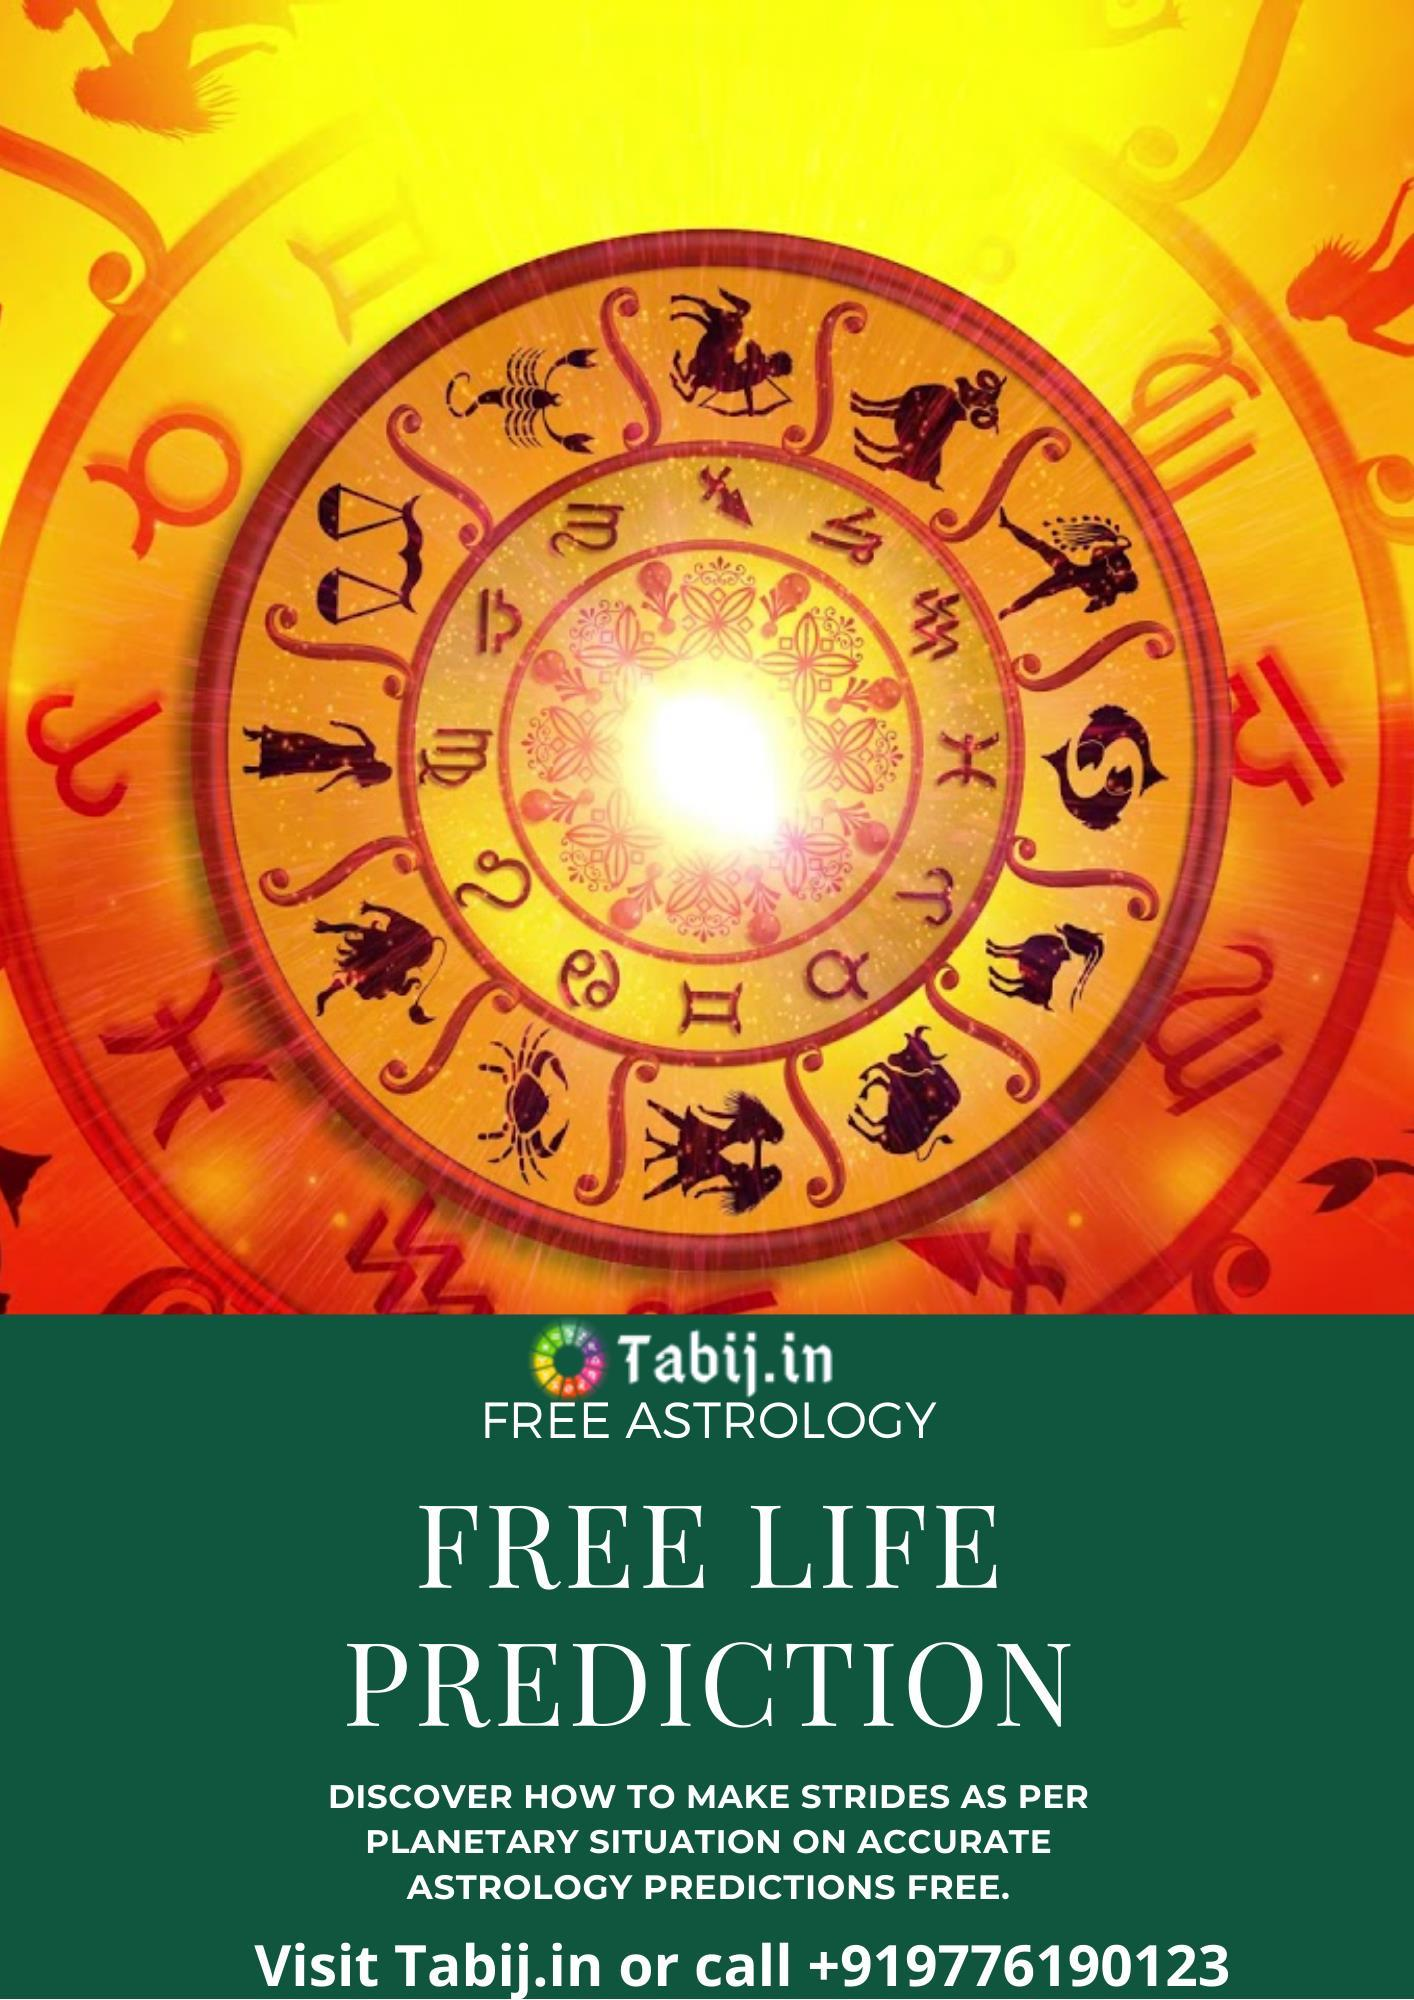 Free Tamil astrology Prediction based on the date of birth